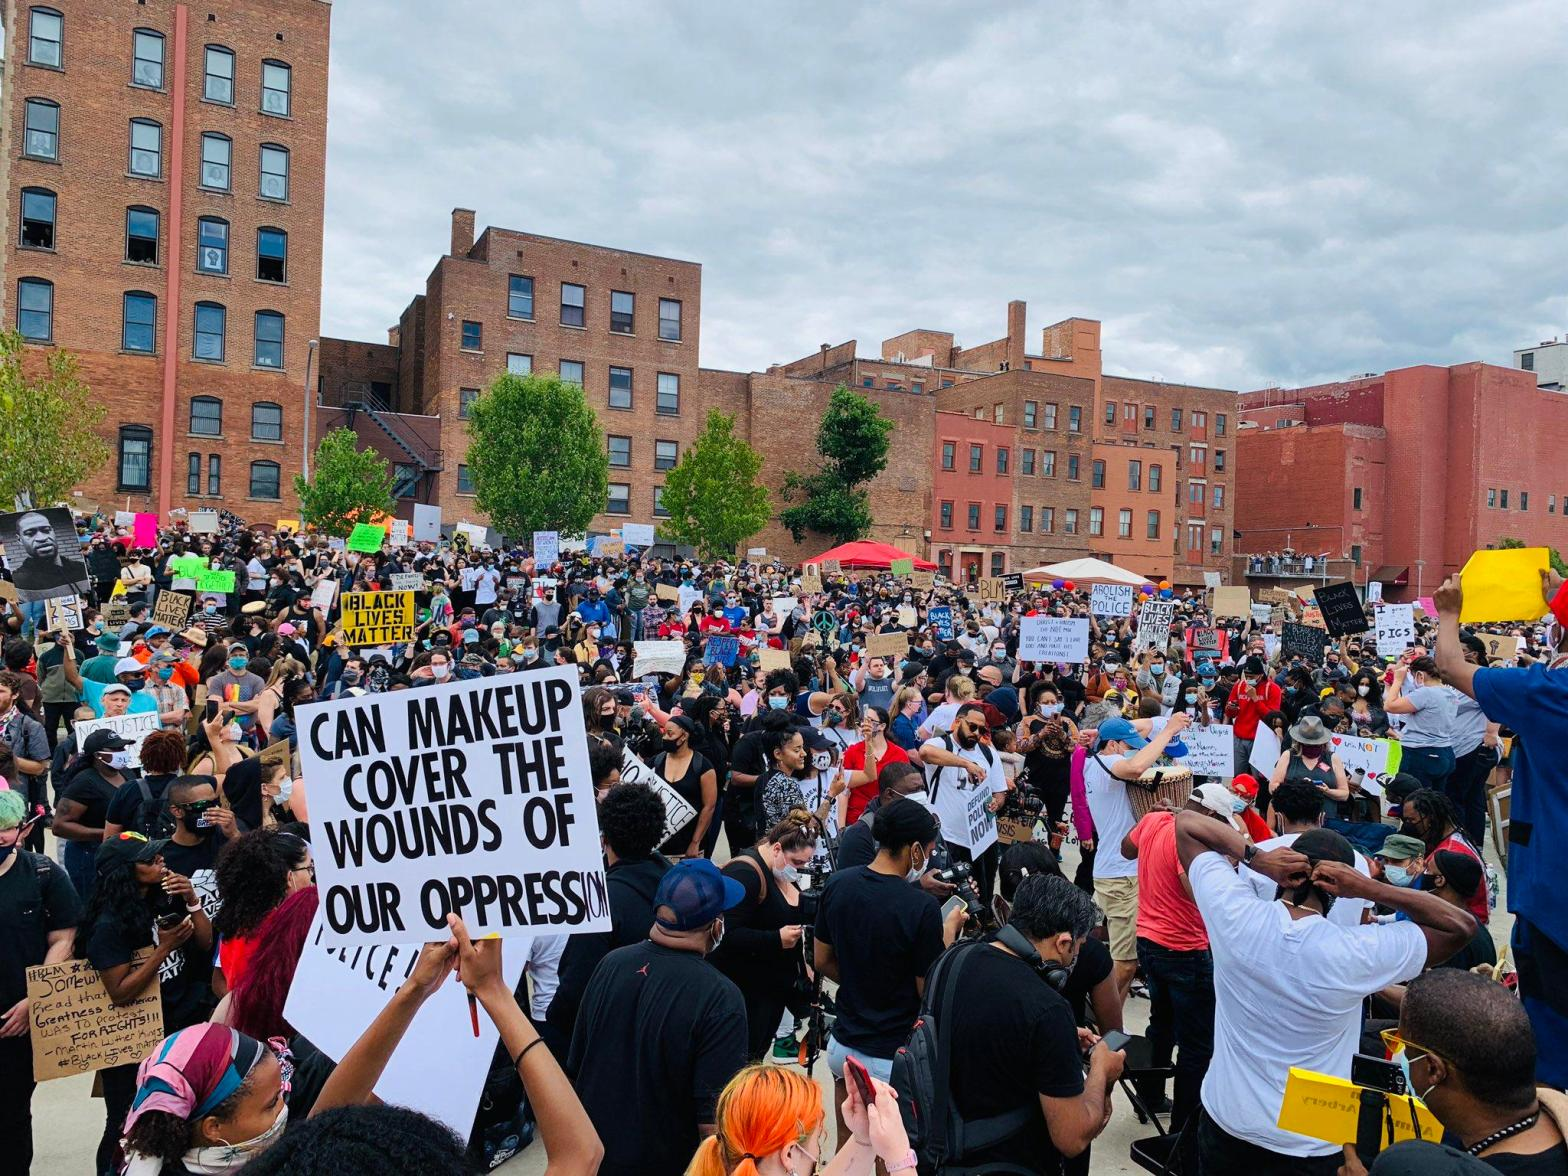 Thousands gathered at Troy's Riverfront Park before marching through city streets Sunday afternoon, June 7, 2020. Photograph credit: Jesse King/WAMC. Photograph source: https://www.wamc.org/post/thousands-march-racial-justice-rally-troy